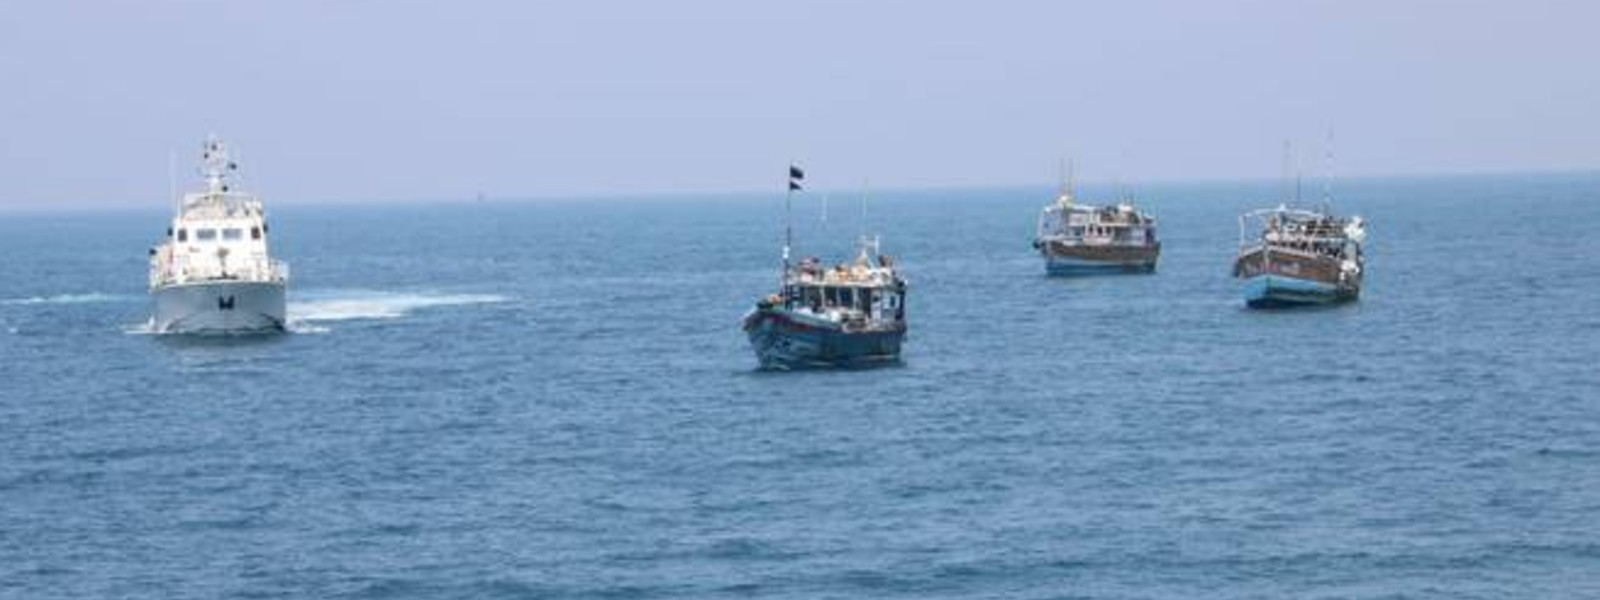 25 SL fishermen arrested by ICG in March for heroin trafficking